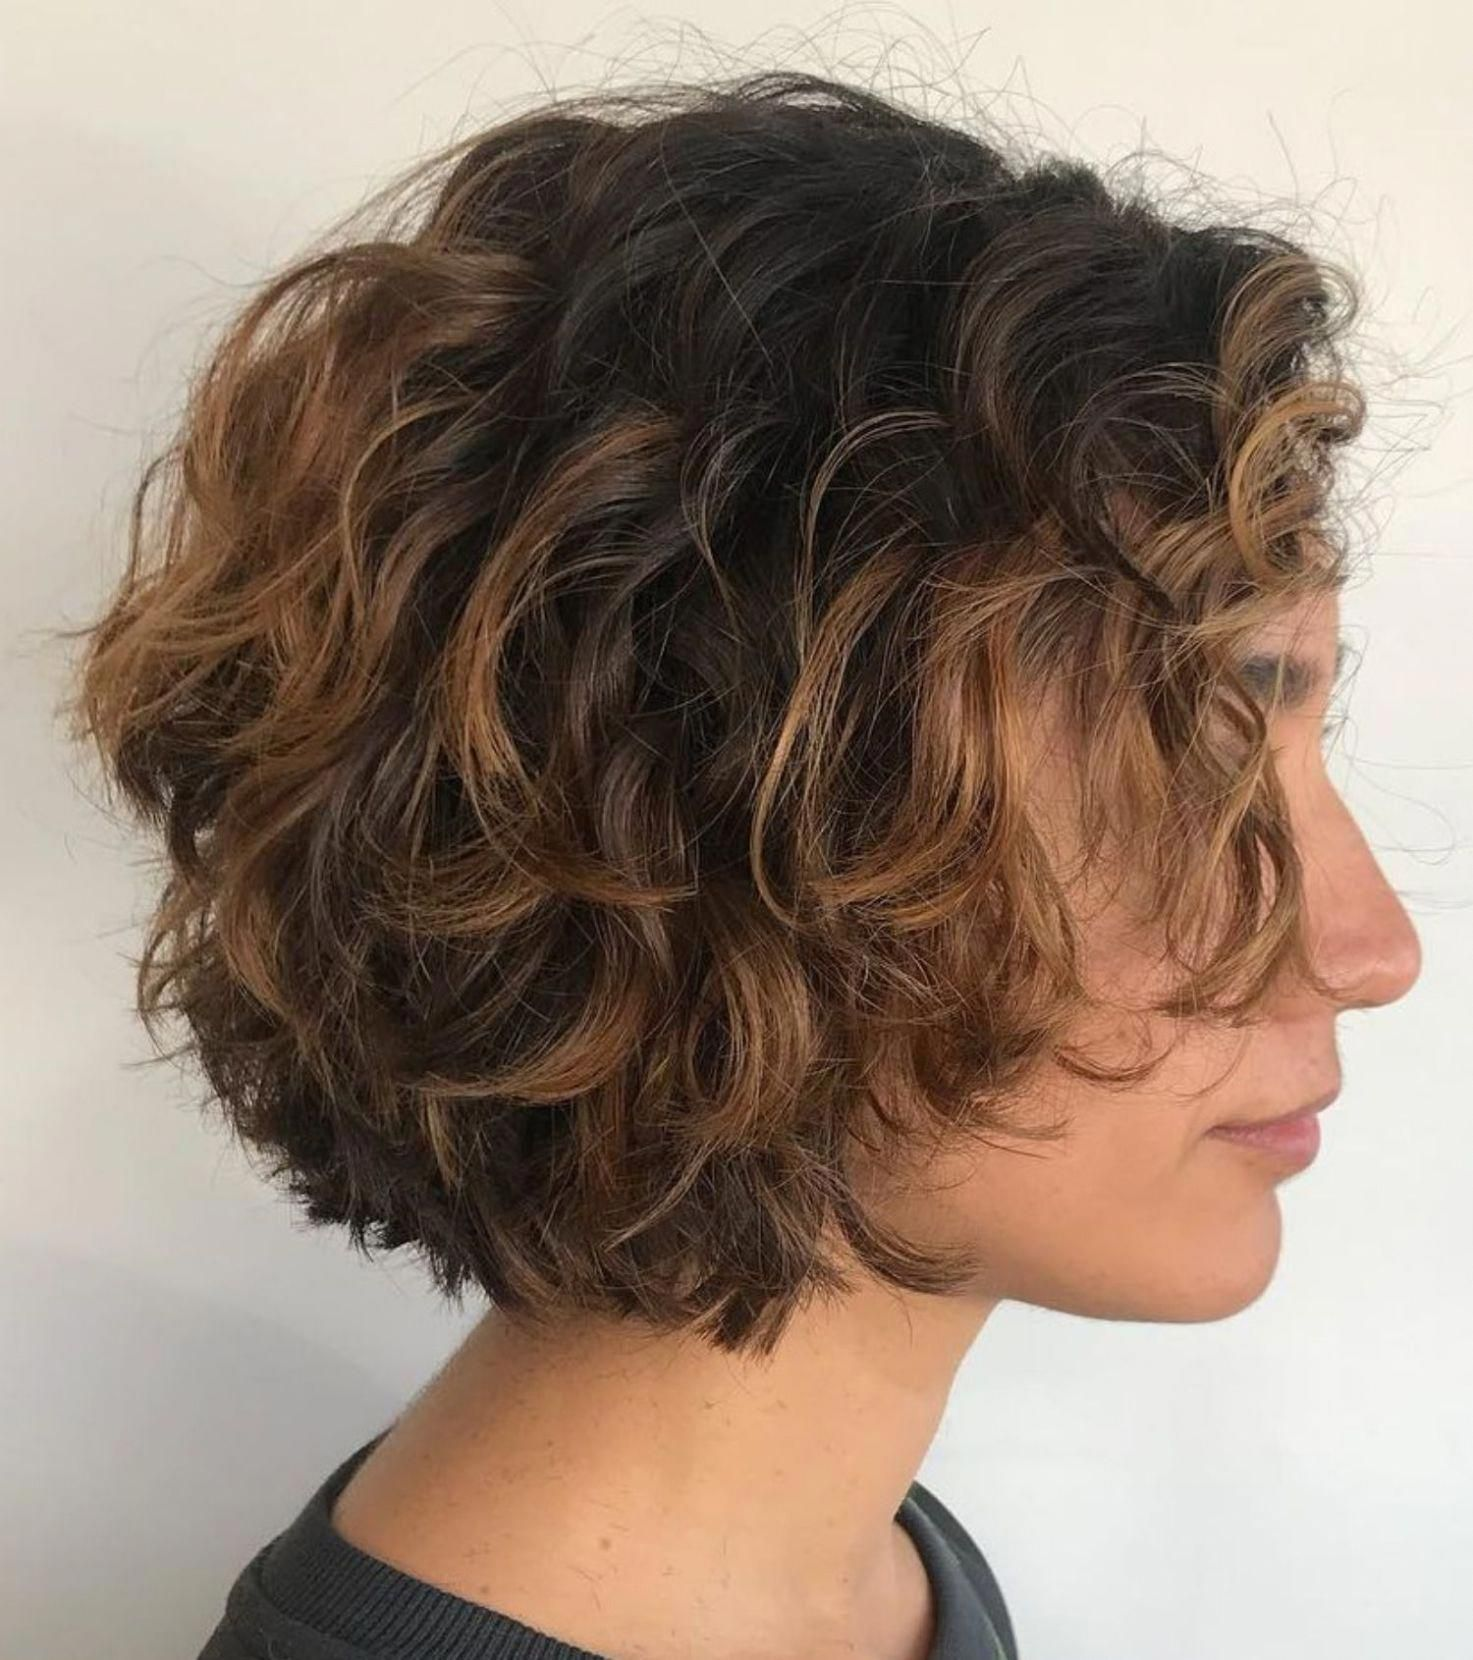 Short Textured Curly Bob Curlybobhairstyles In 2020 Short Wavy Hair Hair Styles Short Curly Hair